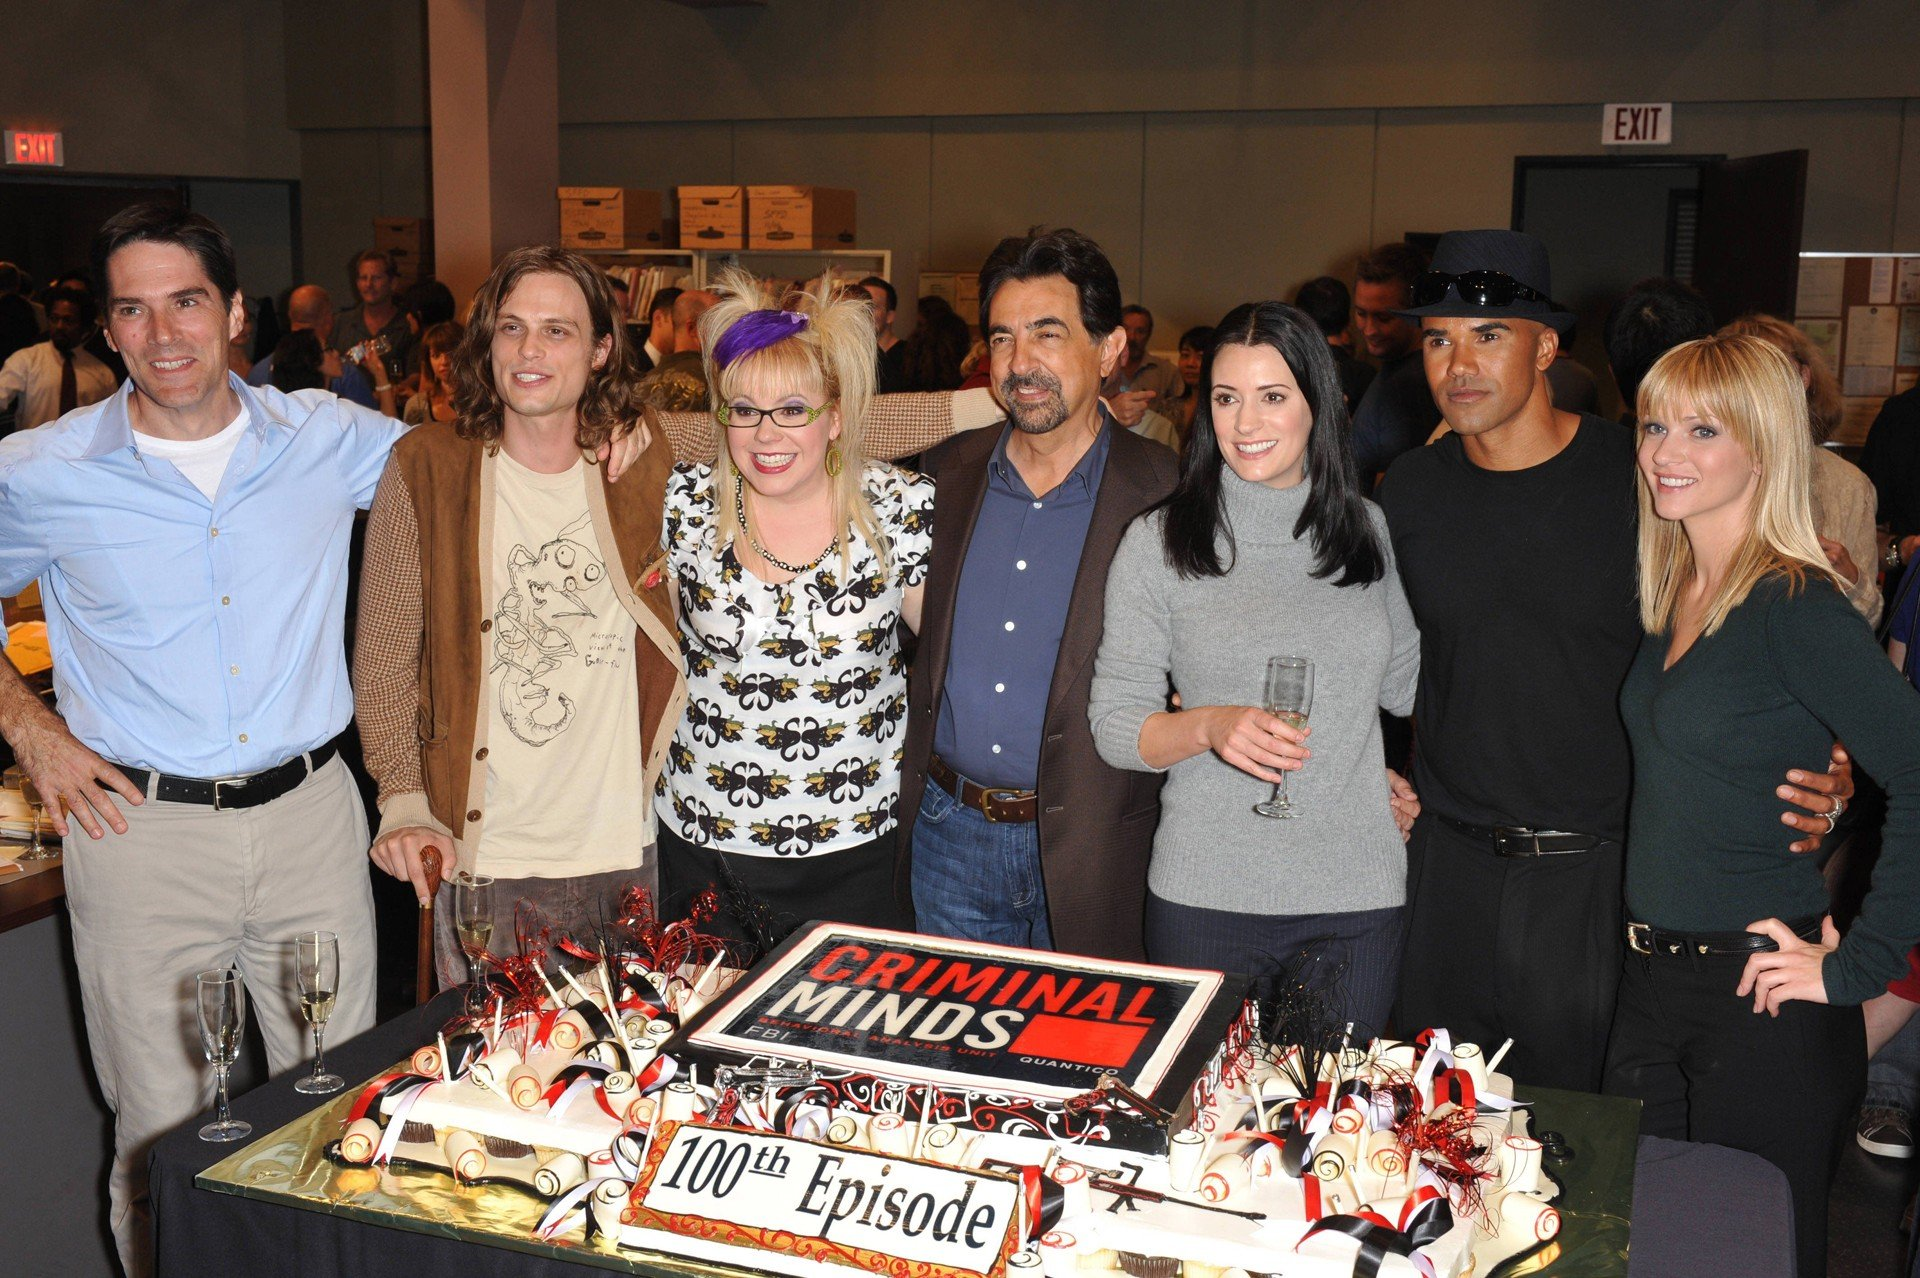 Wallpaper: il cast di Criminal Minds al Party per il 100esimo Episodio negli Quixote Studios a Los Angeles, nel 2009